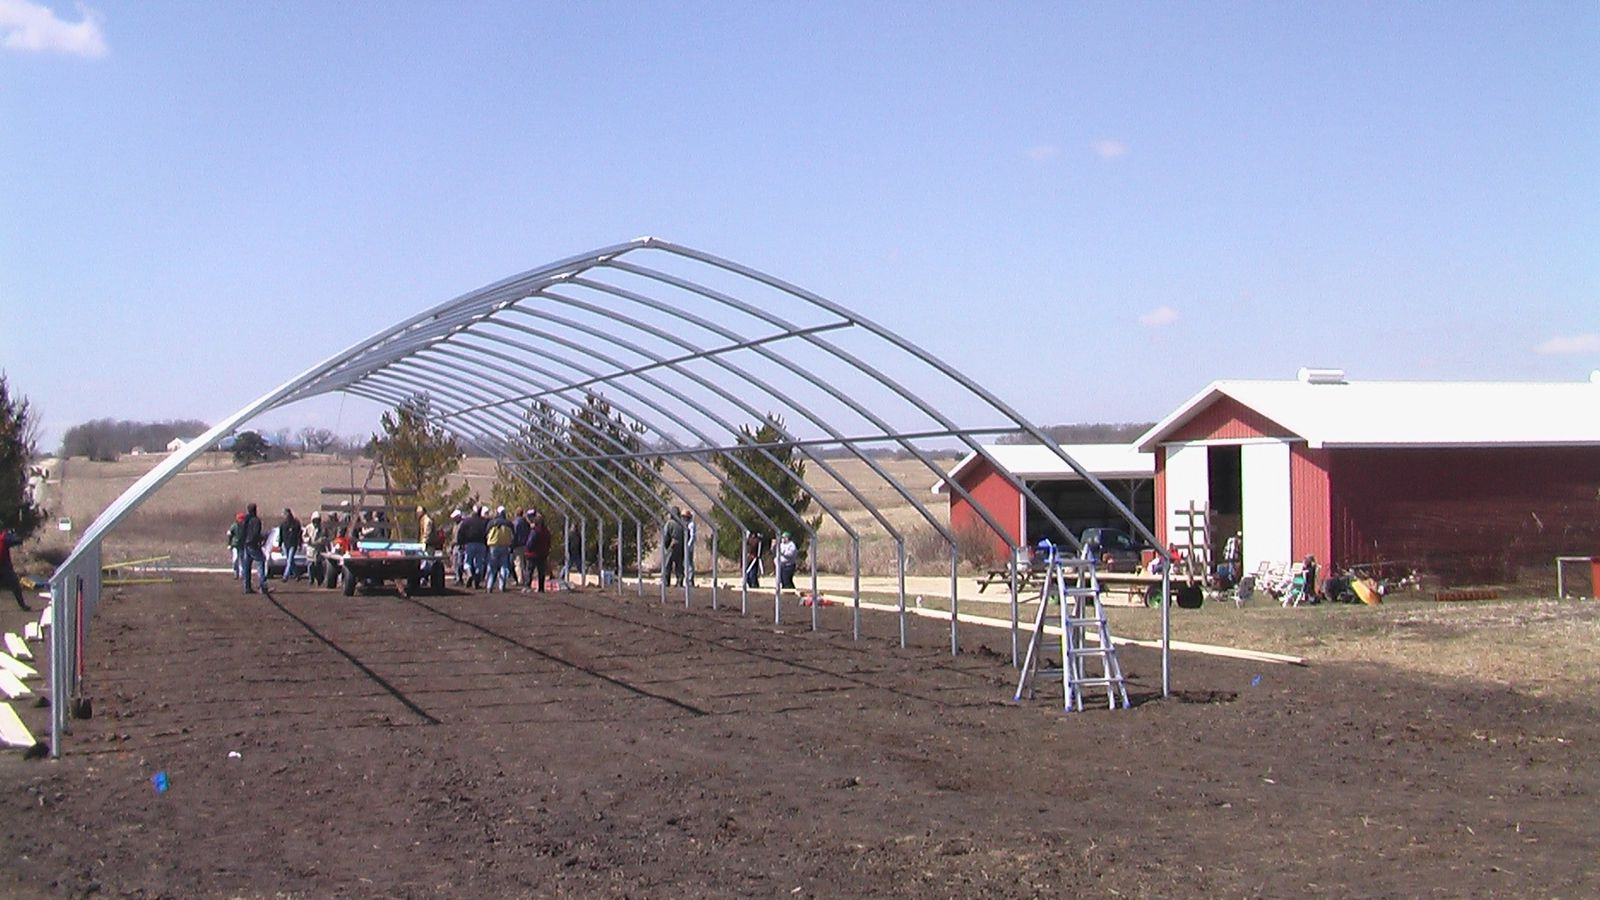 CSA (Community Supported Agriculture) Fair - Feb. 10